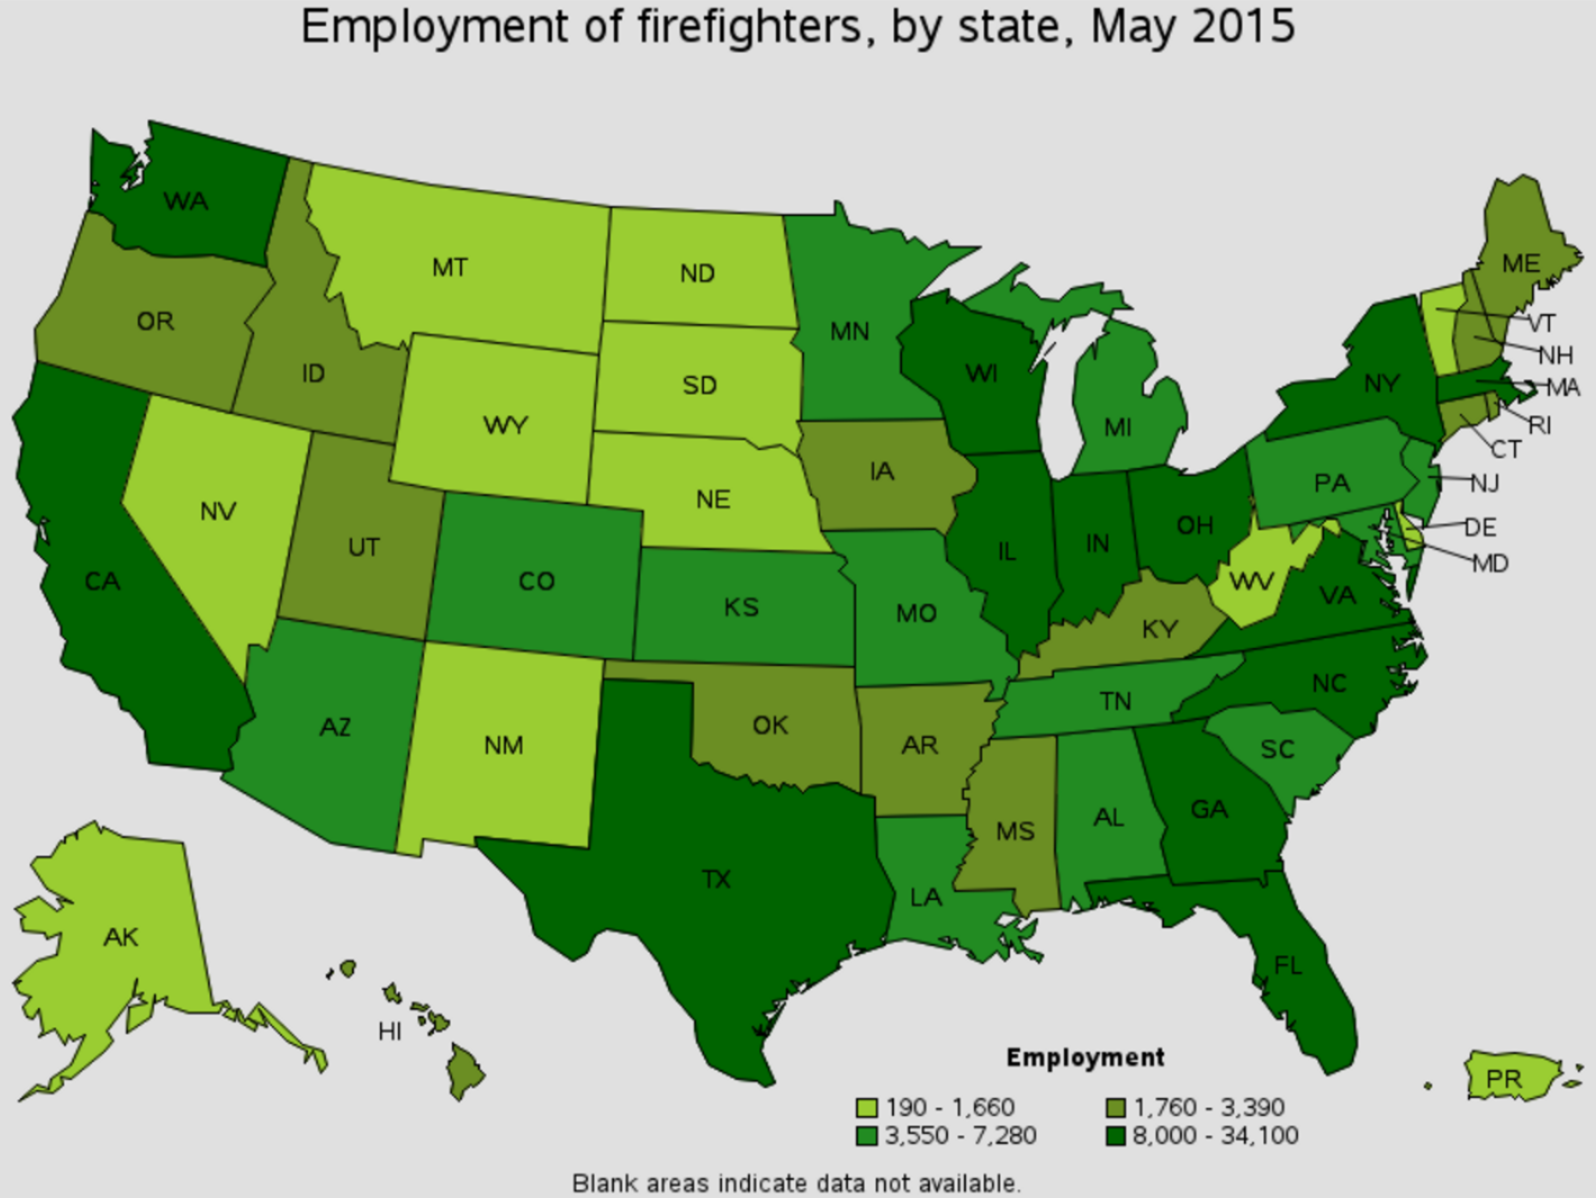 firefighter job outlook by state Bonita Springs Florida